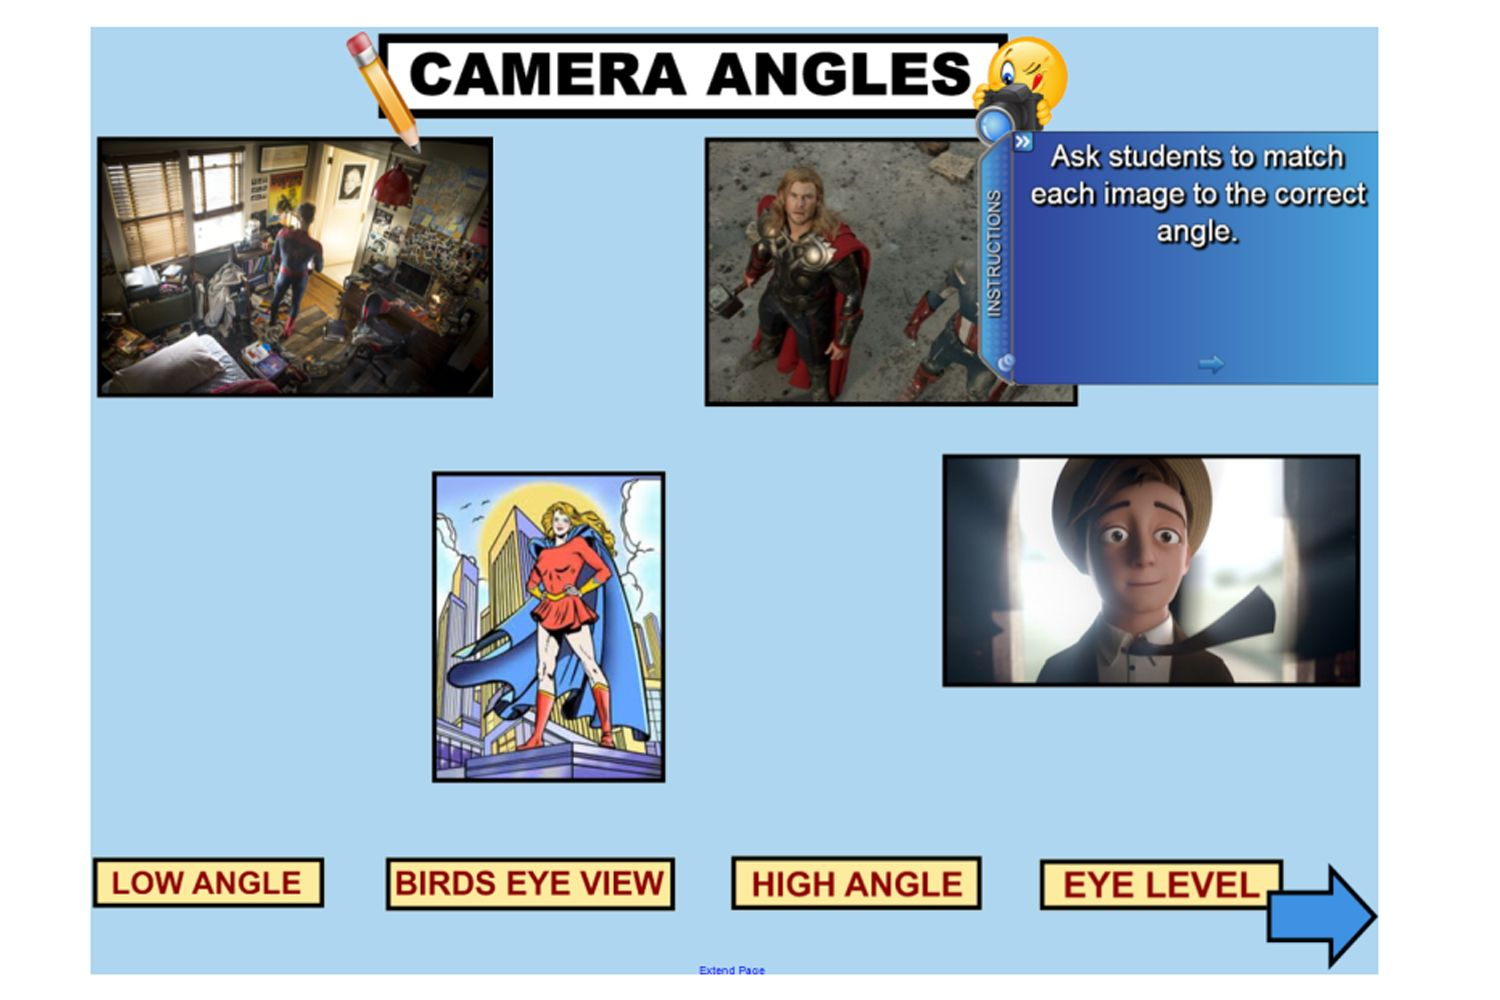 Explicitly Explore The Elements Of Visual Literacy With